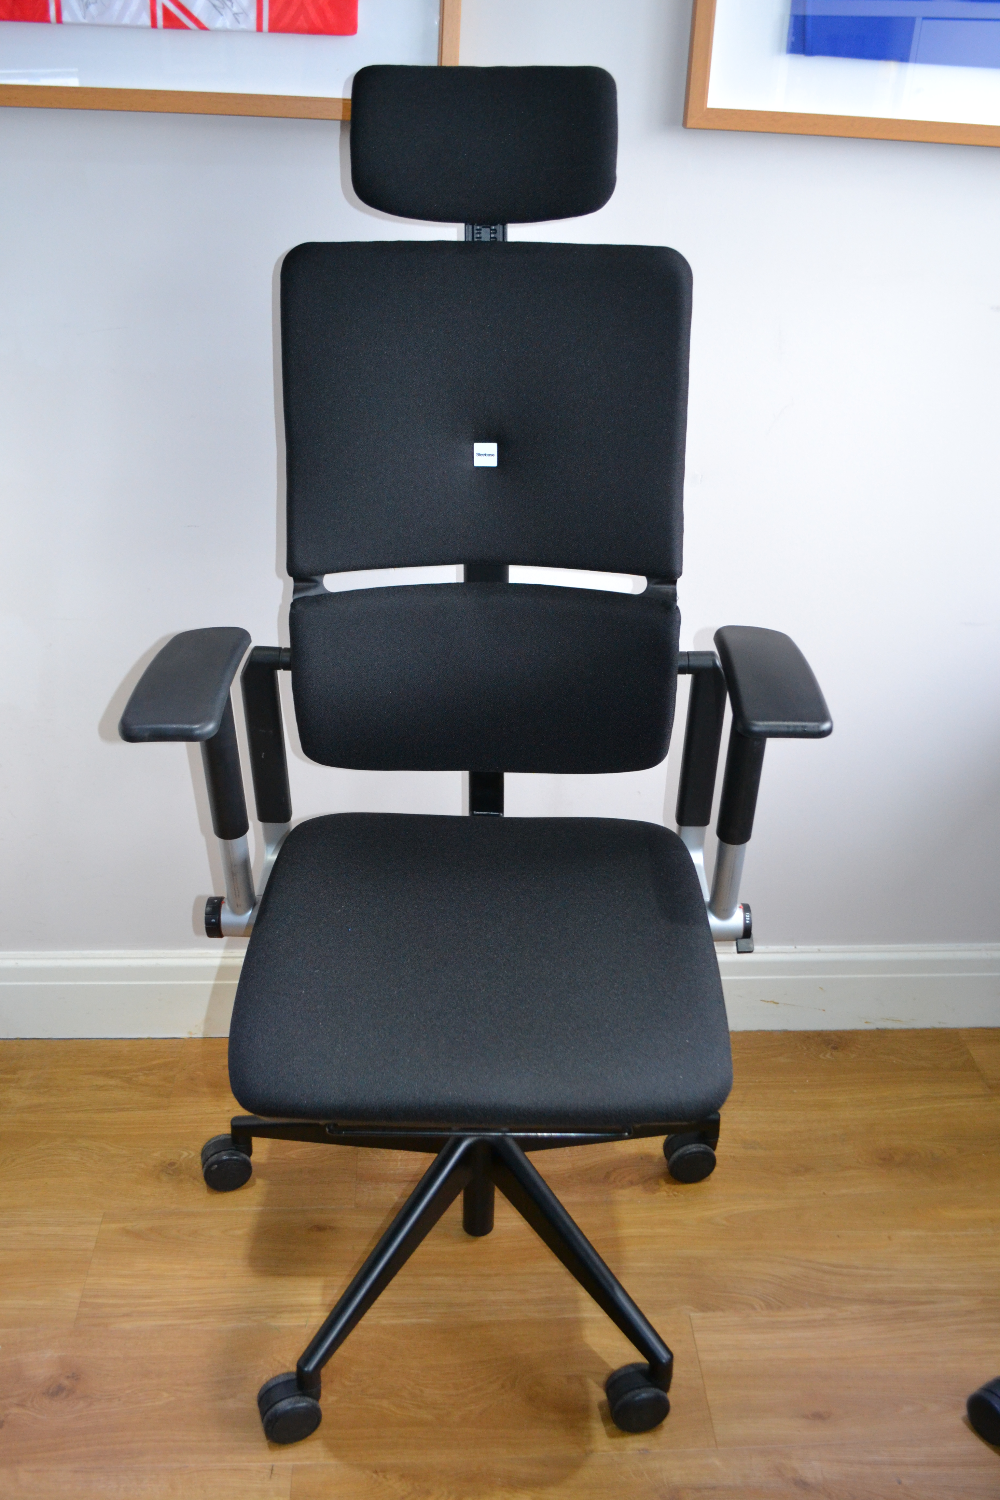 London Used Aeron Chairs Desk Herman Miller RH Chairs Second Hand Mirra Herman  Miller Aeron.